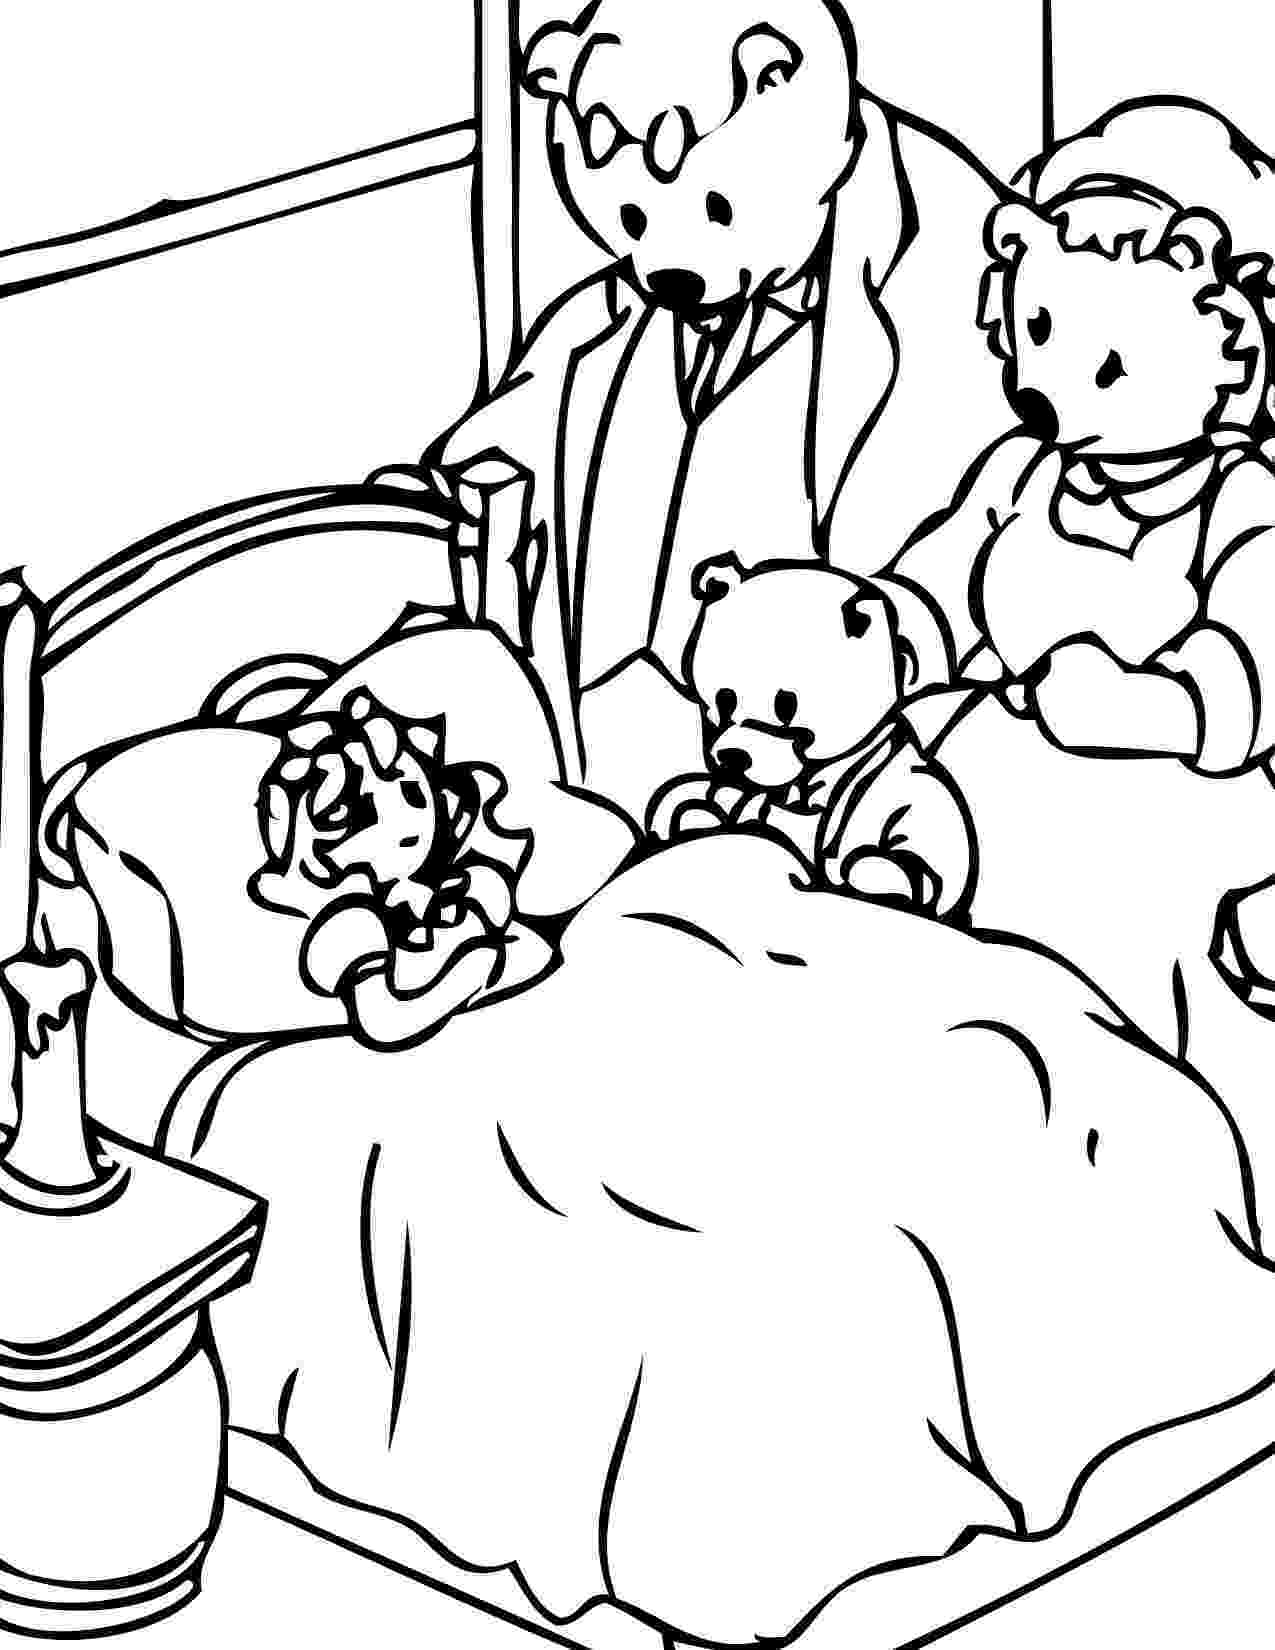 colour by number goldilocks goldilocks and the three bears coloring pages free at number by goldilocks colour